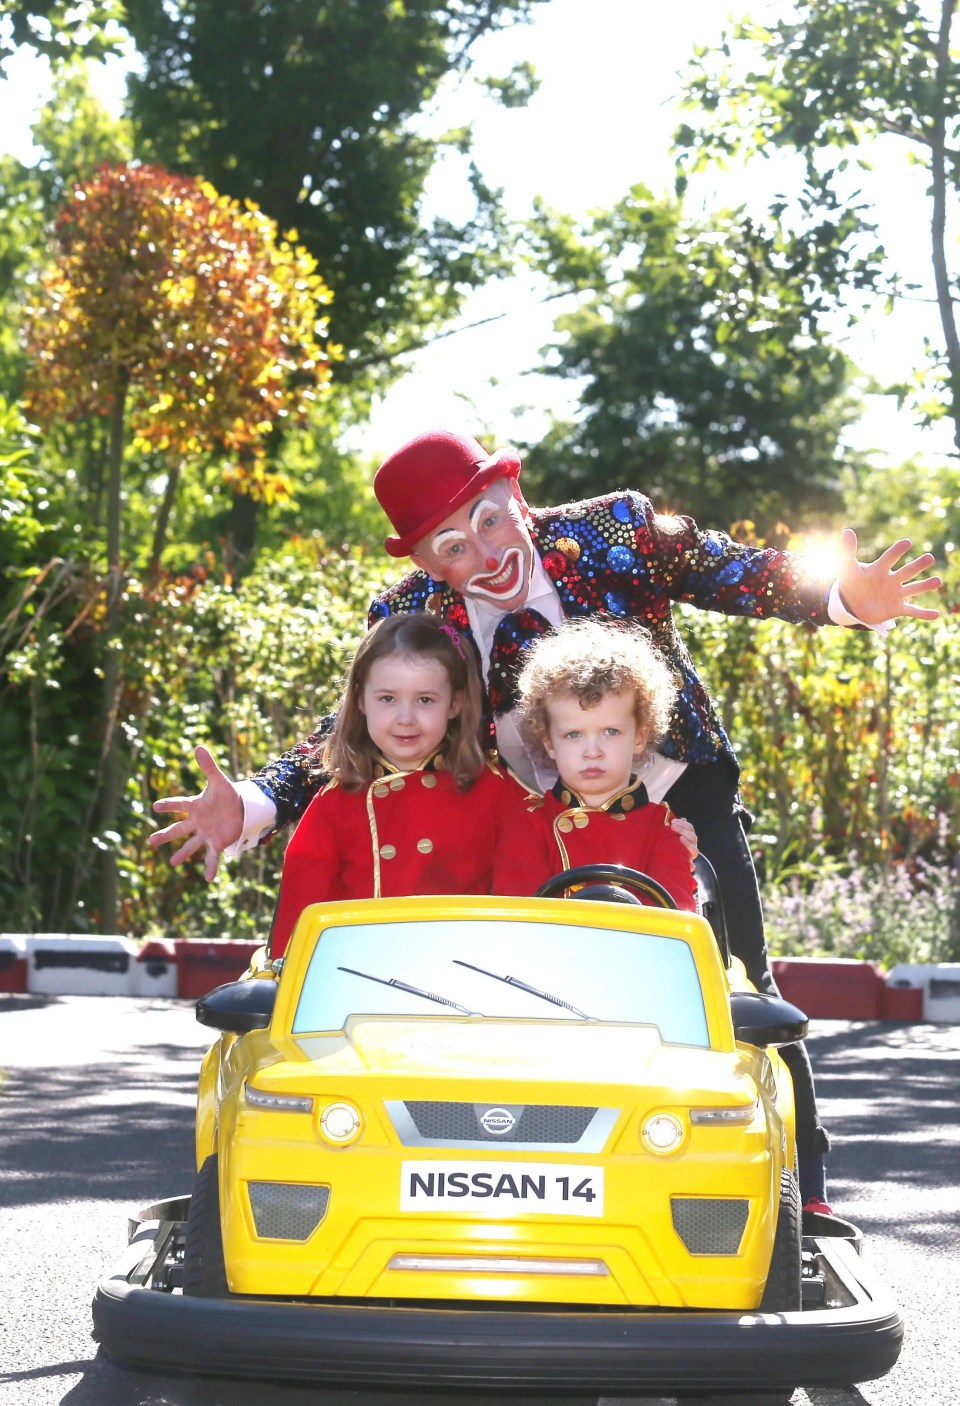 The Show by Fossetts at Tayto Park